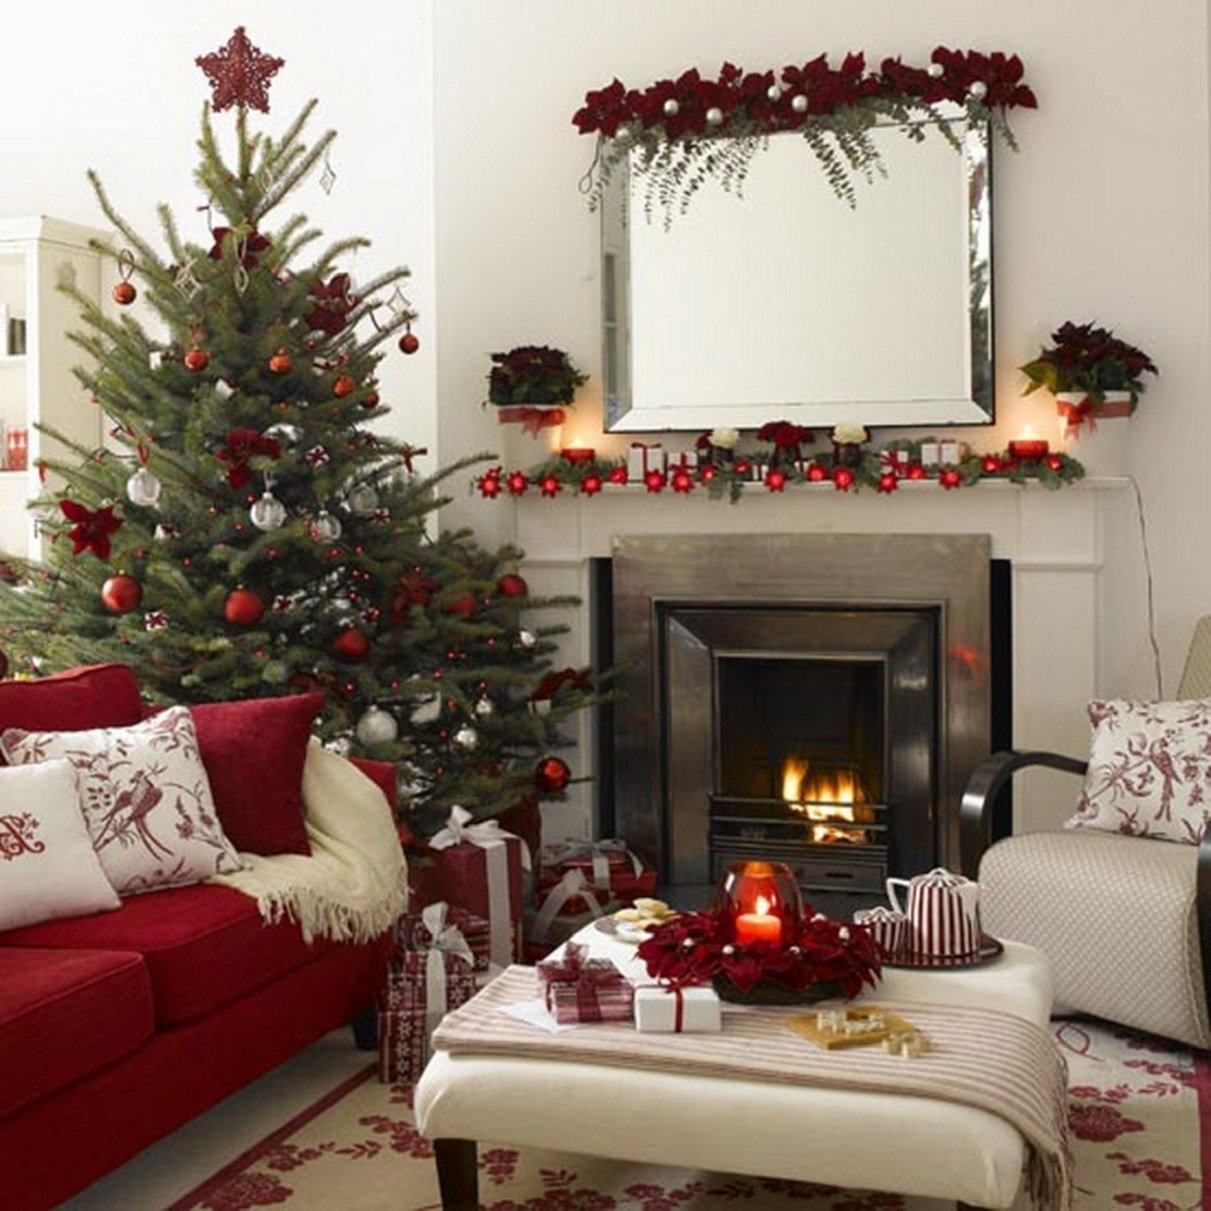 High Quality 10 Unique Christmas Decorating Ideas For Apartments Apartment Traditional  Apartment Interior Design Warm Living Room 2